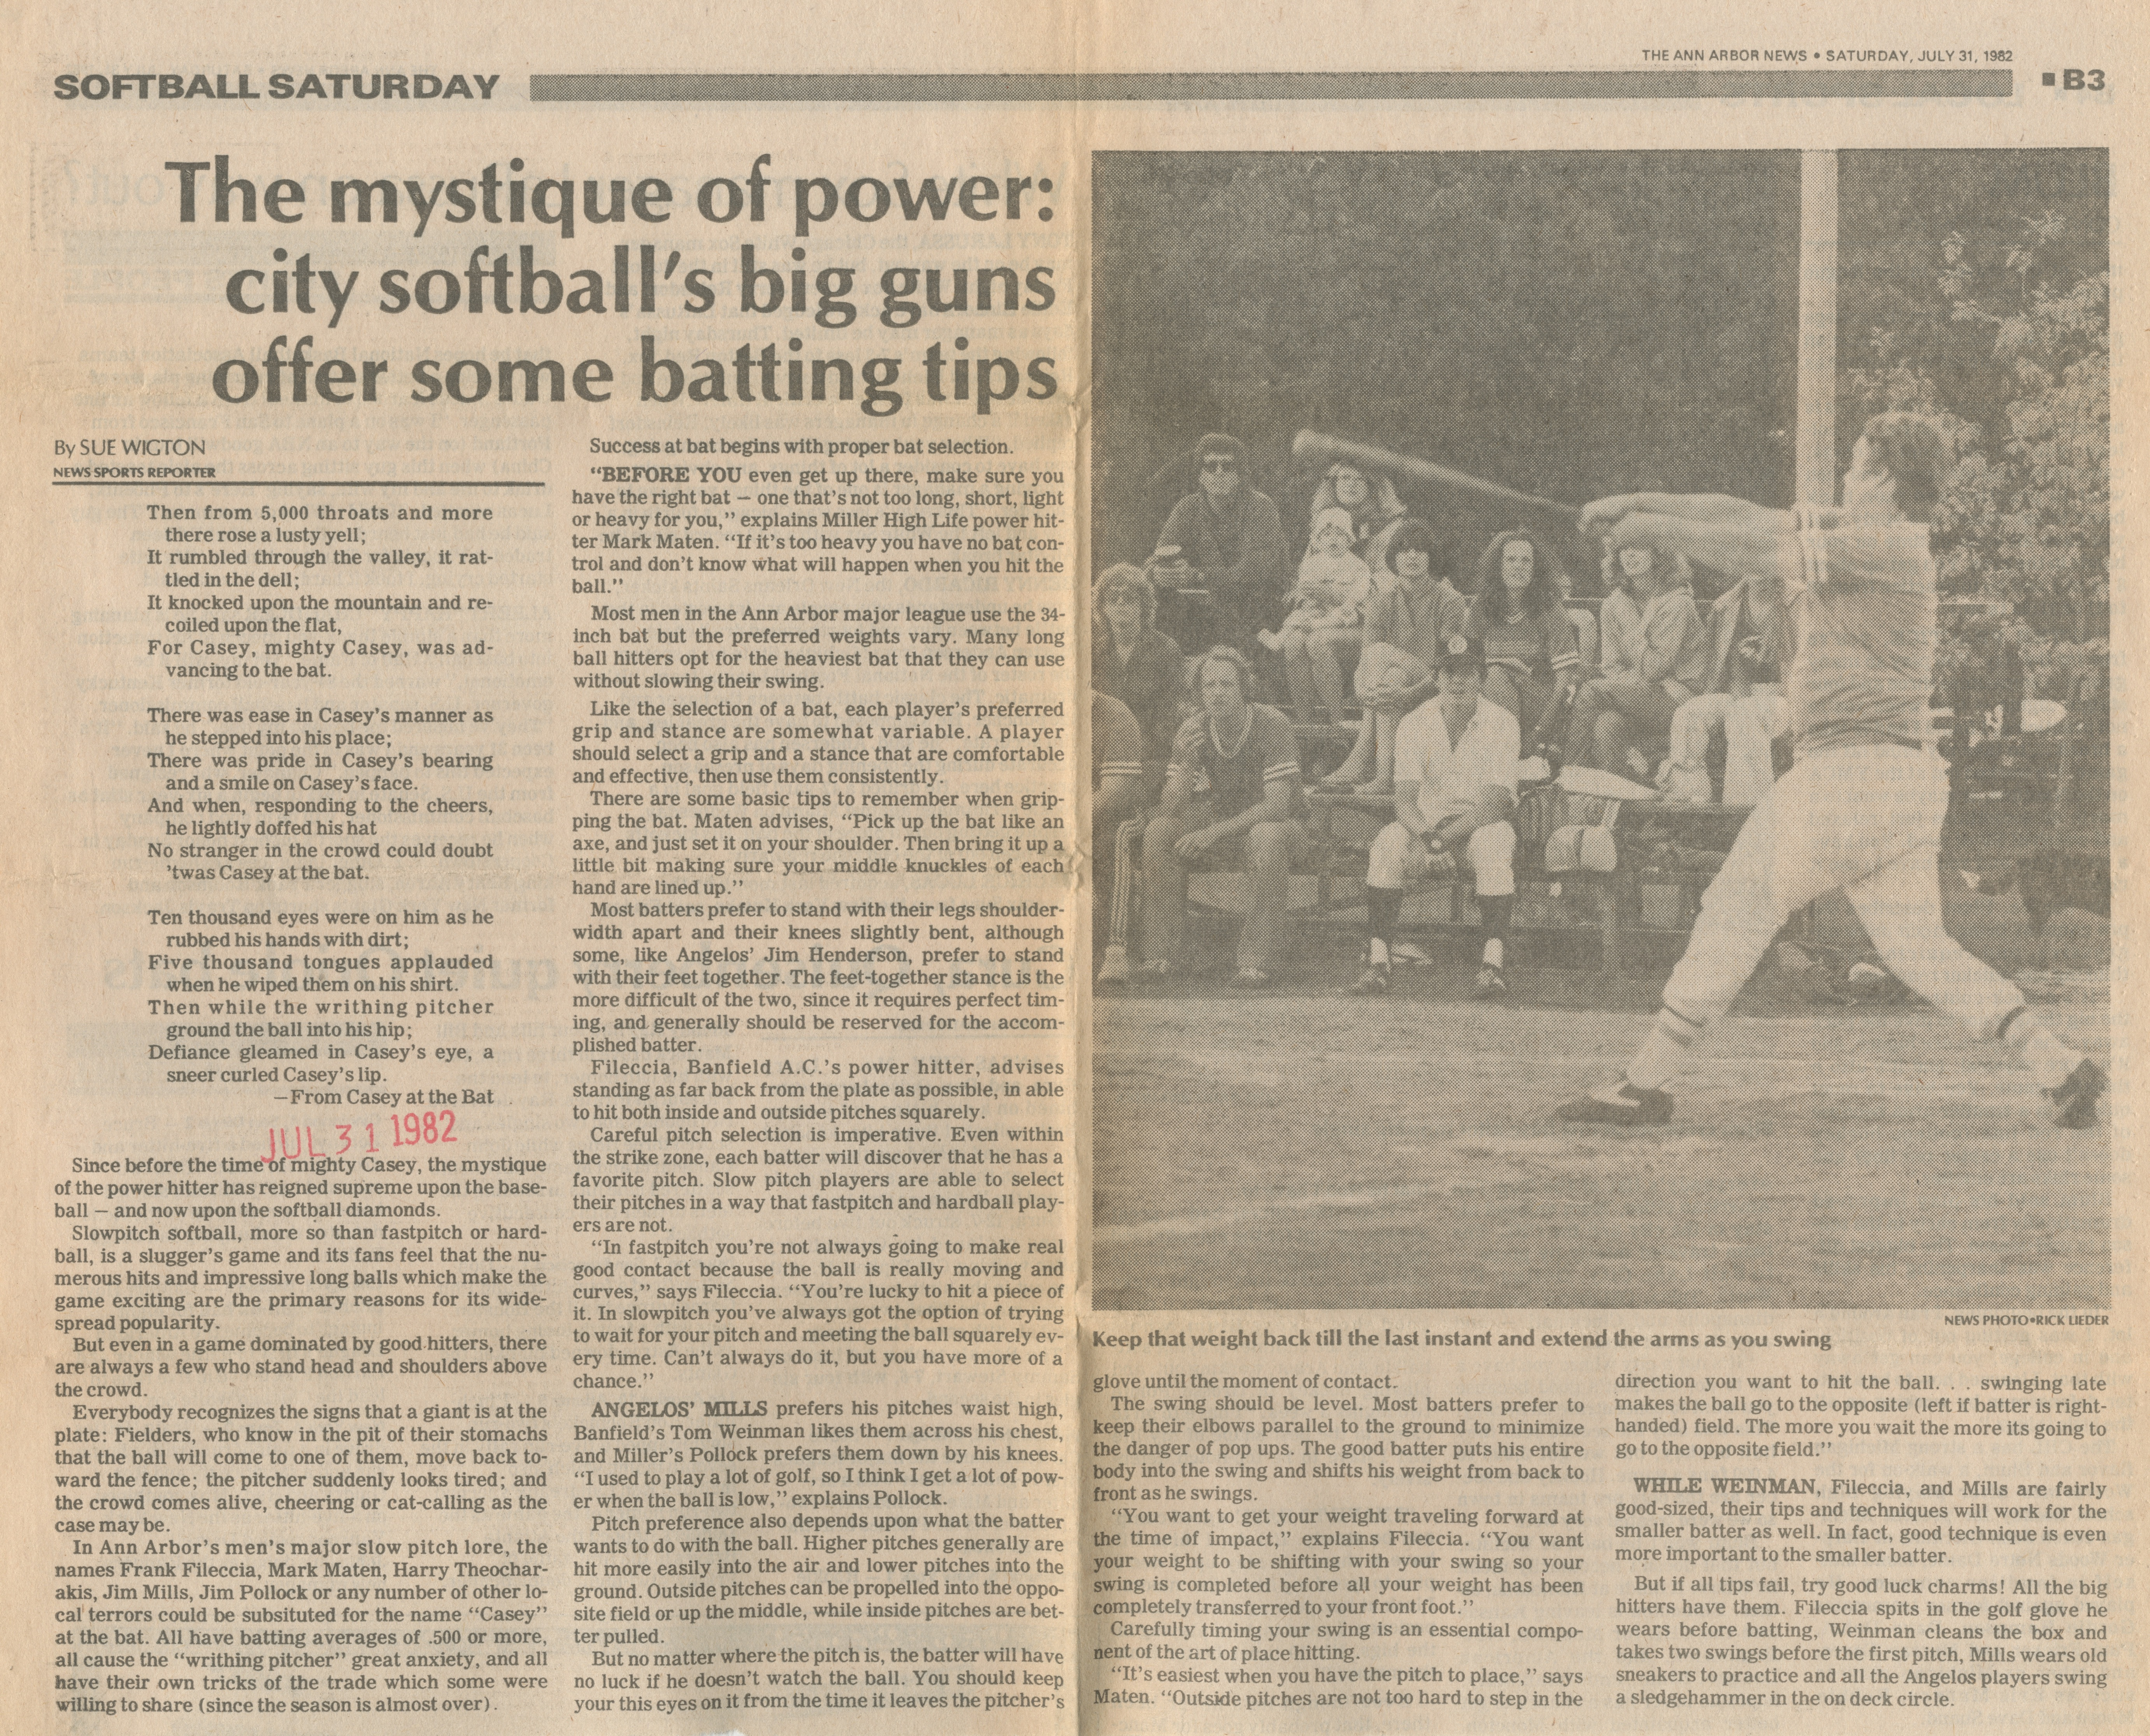 The Mystique Of Power: City Softball's Big Guns Offer Some Batting Tips image